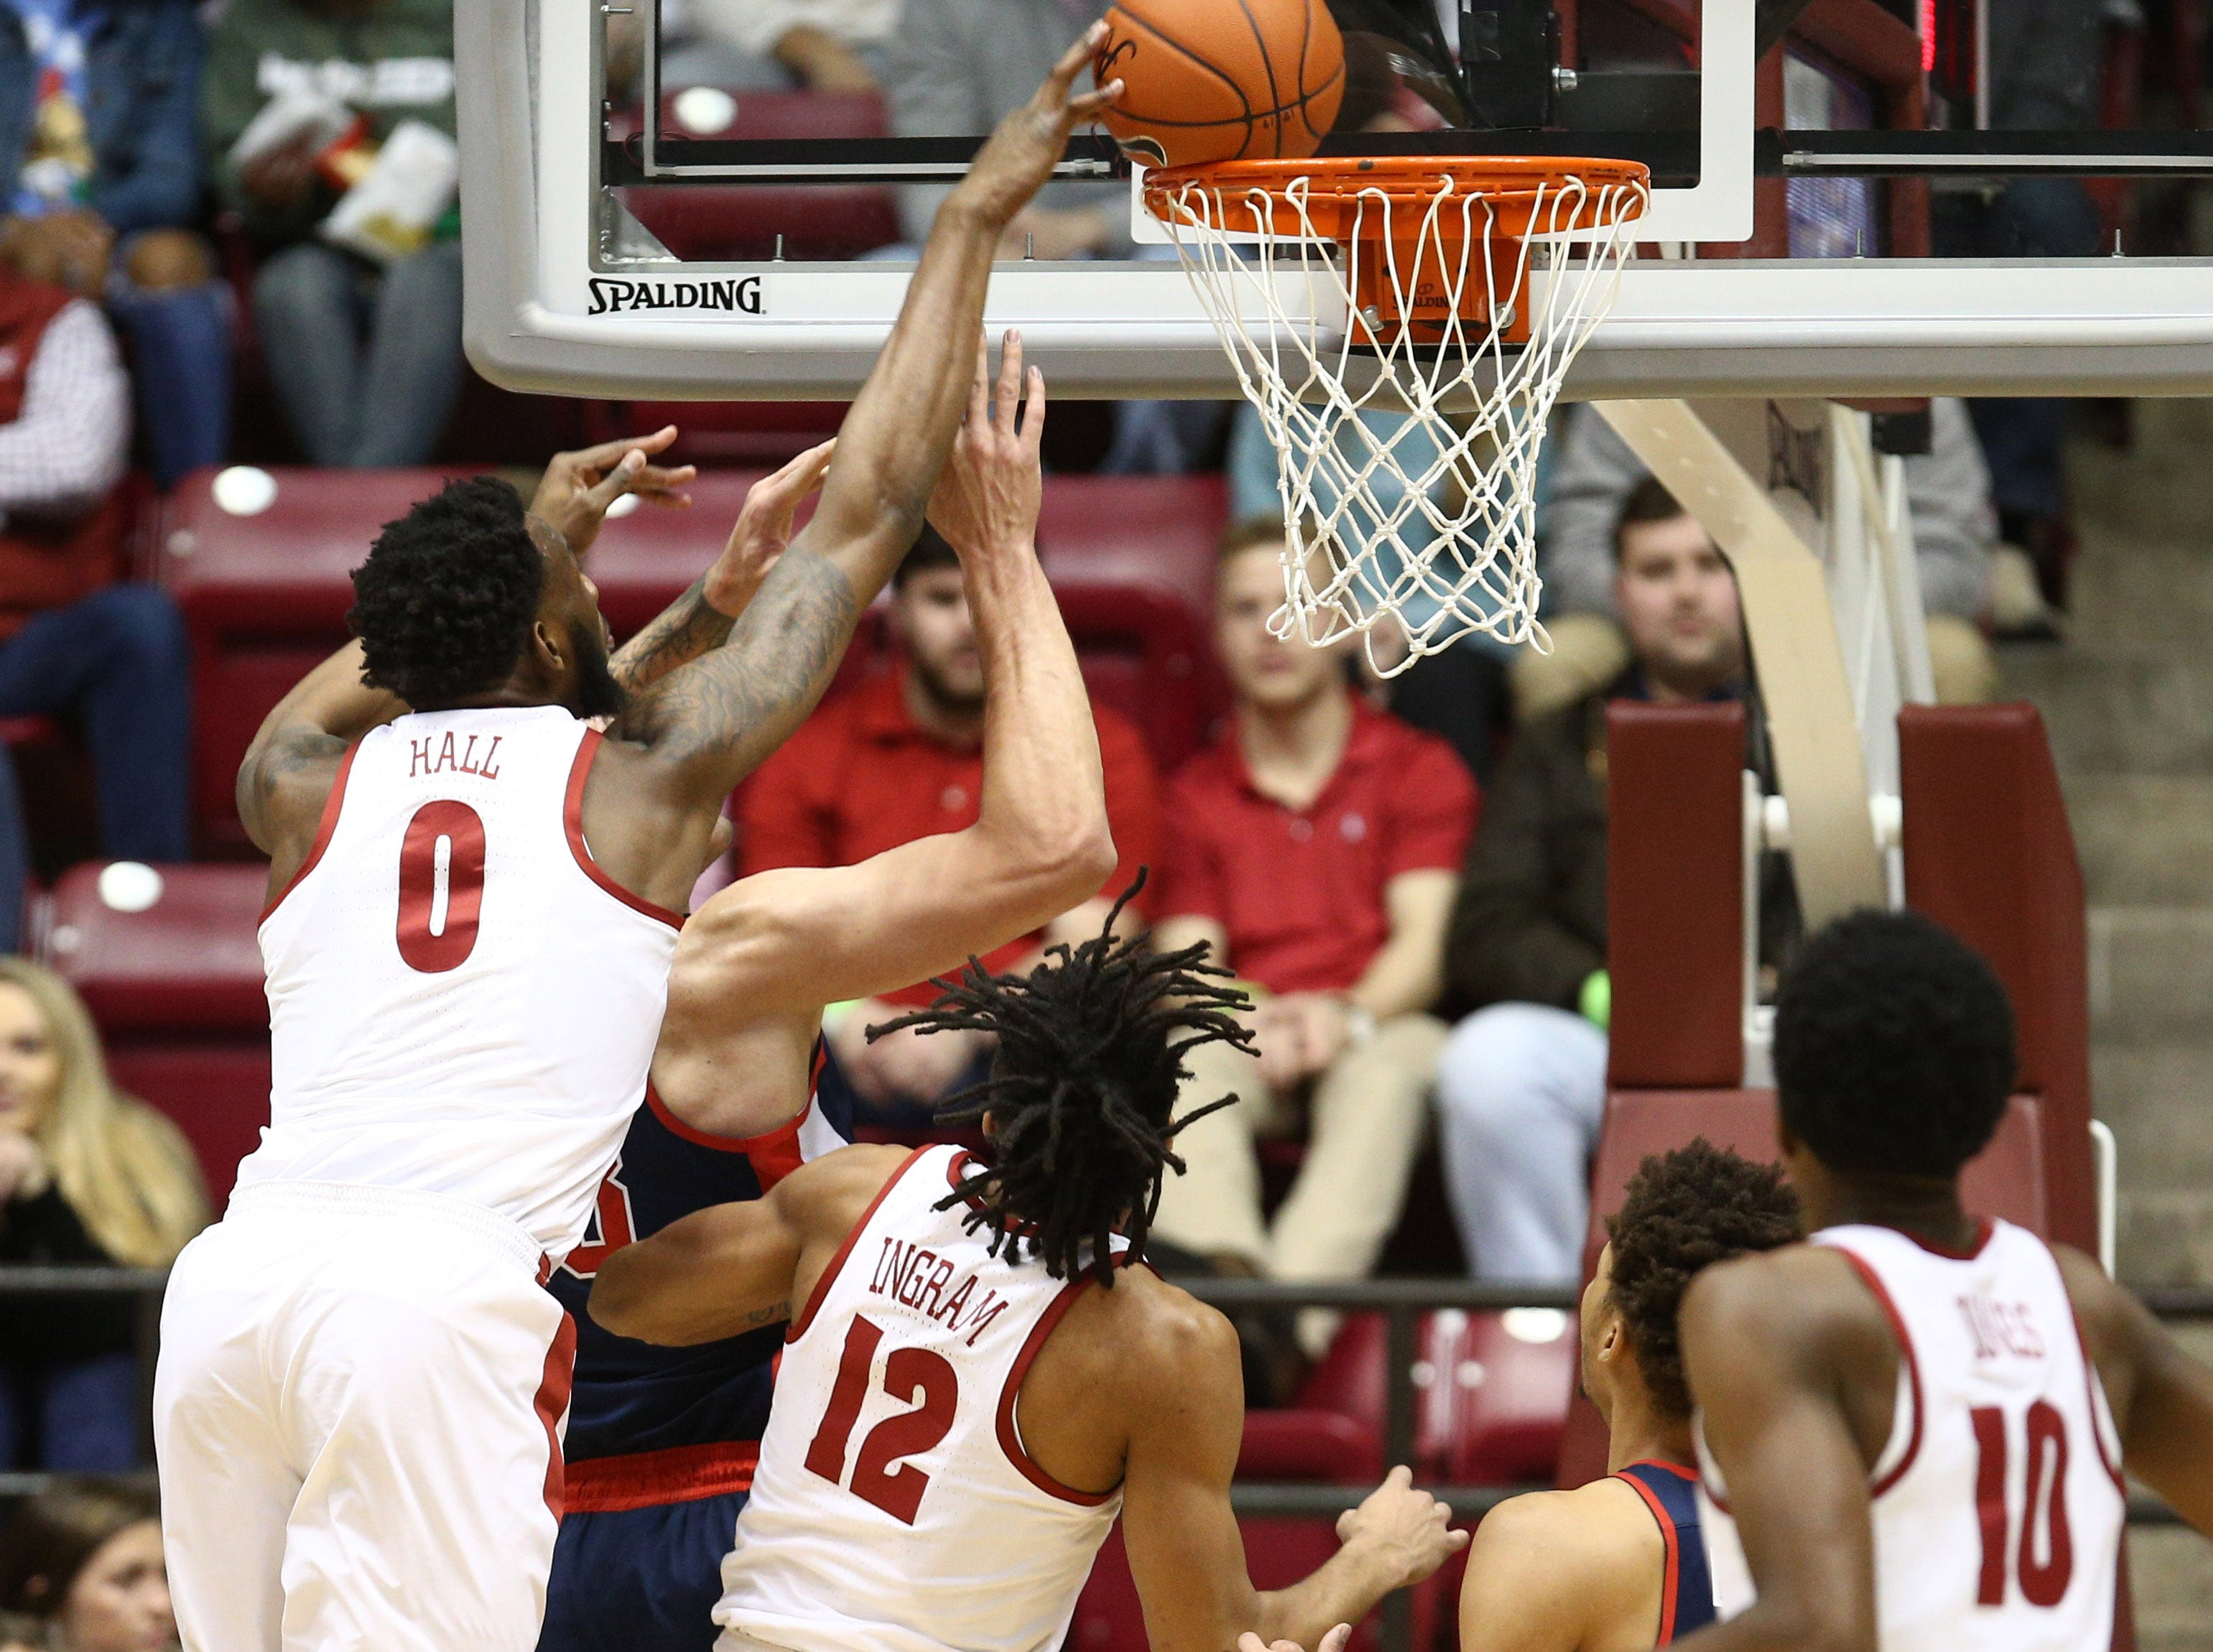 Jan 22, 2019; Tuscaloosa, AL, USA; Alabama Crimson Tide forward Donta Hall (0) goes for the shot over Mississippi Rebels center Dominik Olejniczak (13) during  the first half   at Coleman Coliseum. Mandatory Credit: Marvin Gentry-USA TODAY Sports